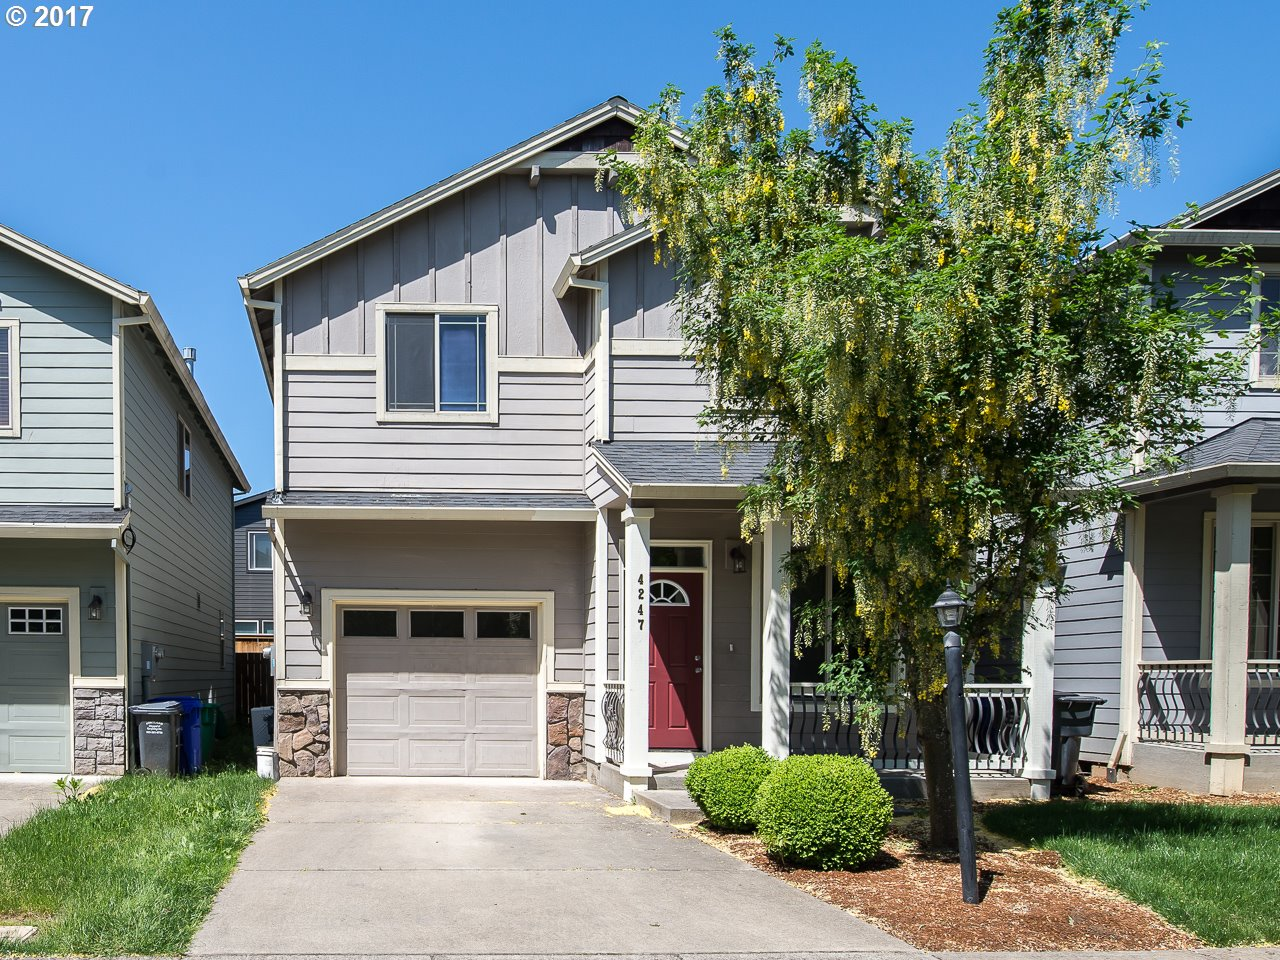 1486 sq. ft 4 bedrooms 2 bathrooms  House For Sale, Portland, OR